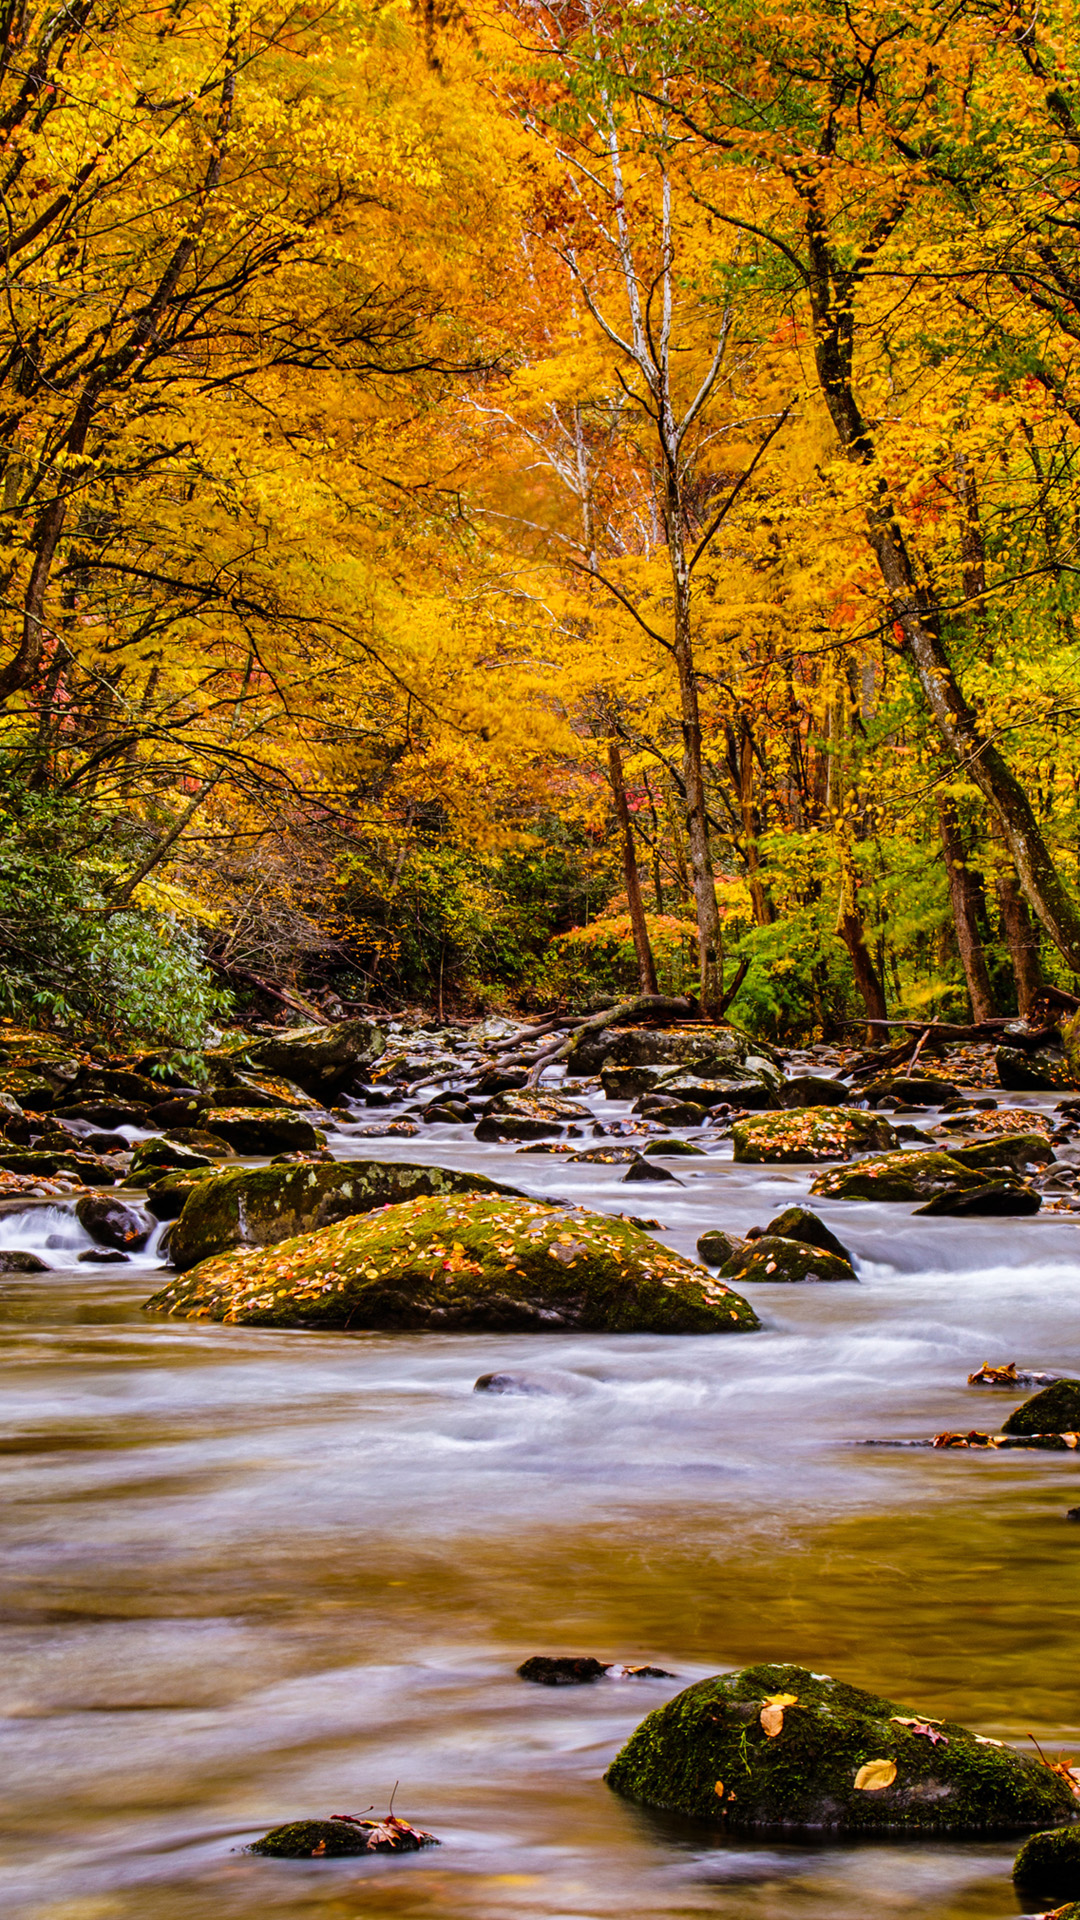 Nature Picture Of Autumn Forest In The Great Smoky Mountain National Park For Mobile Phones